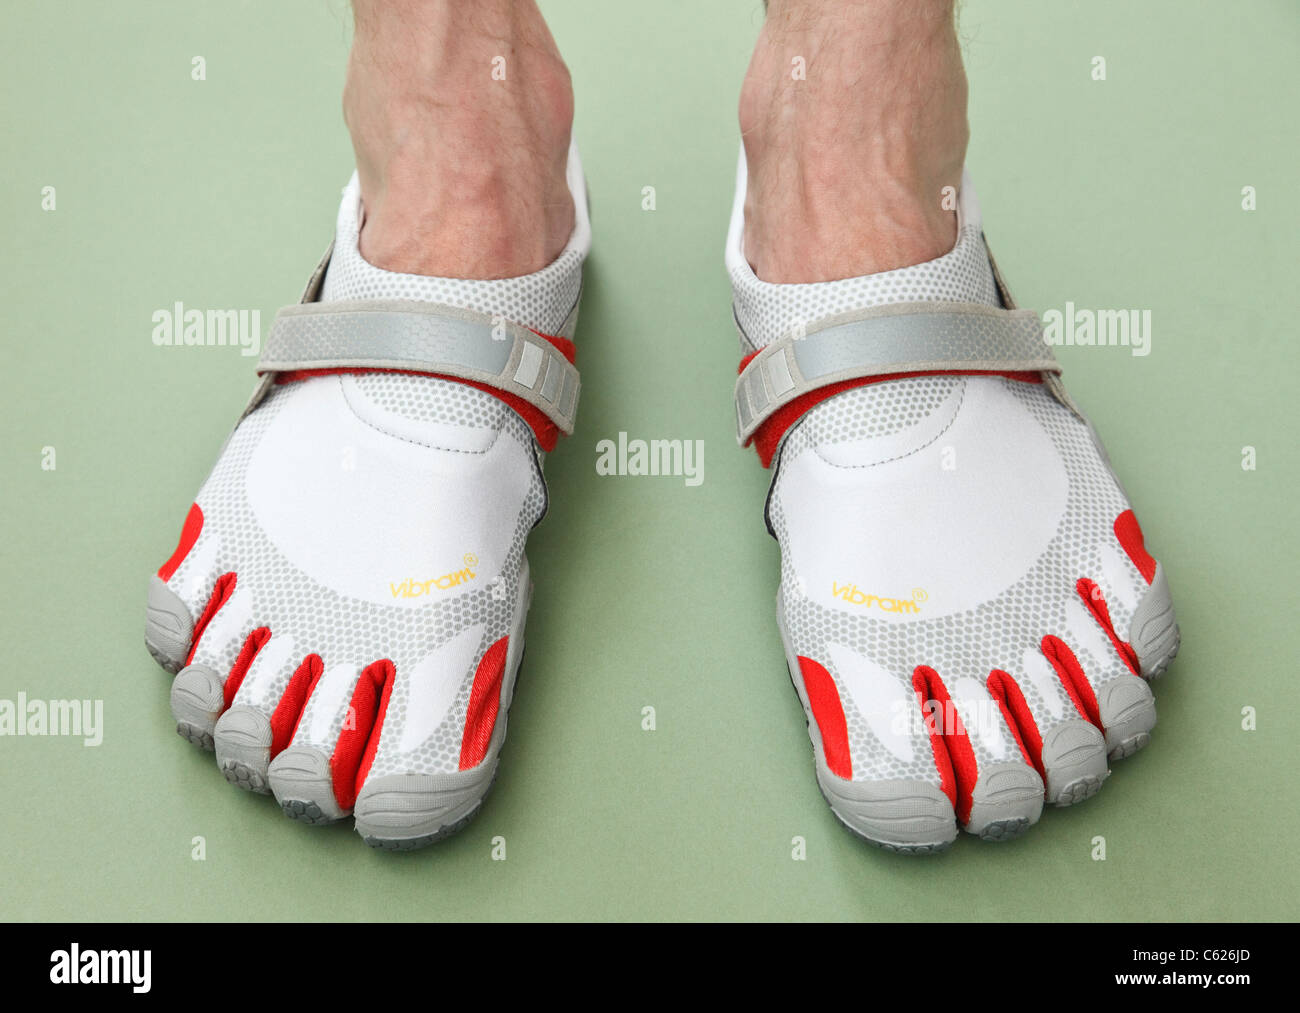 buy online 0bd90 125c2 A man wearing a pair of Vibram FiveFingers Bikila barefoot minimalist  athletic walking and running sports shoes.